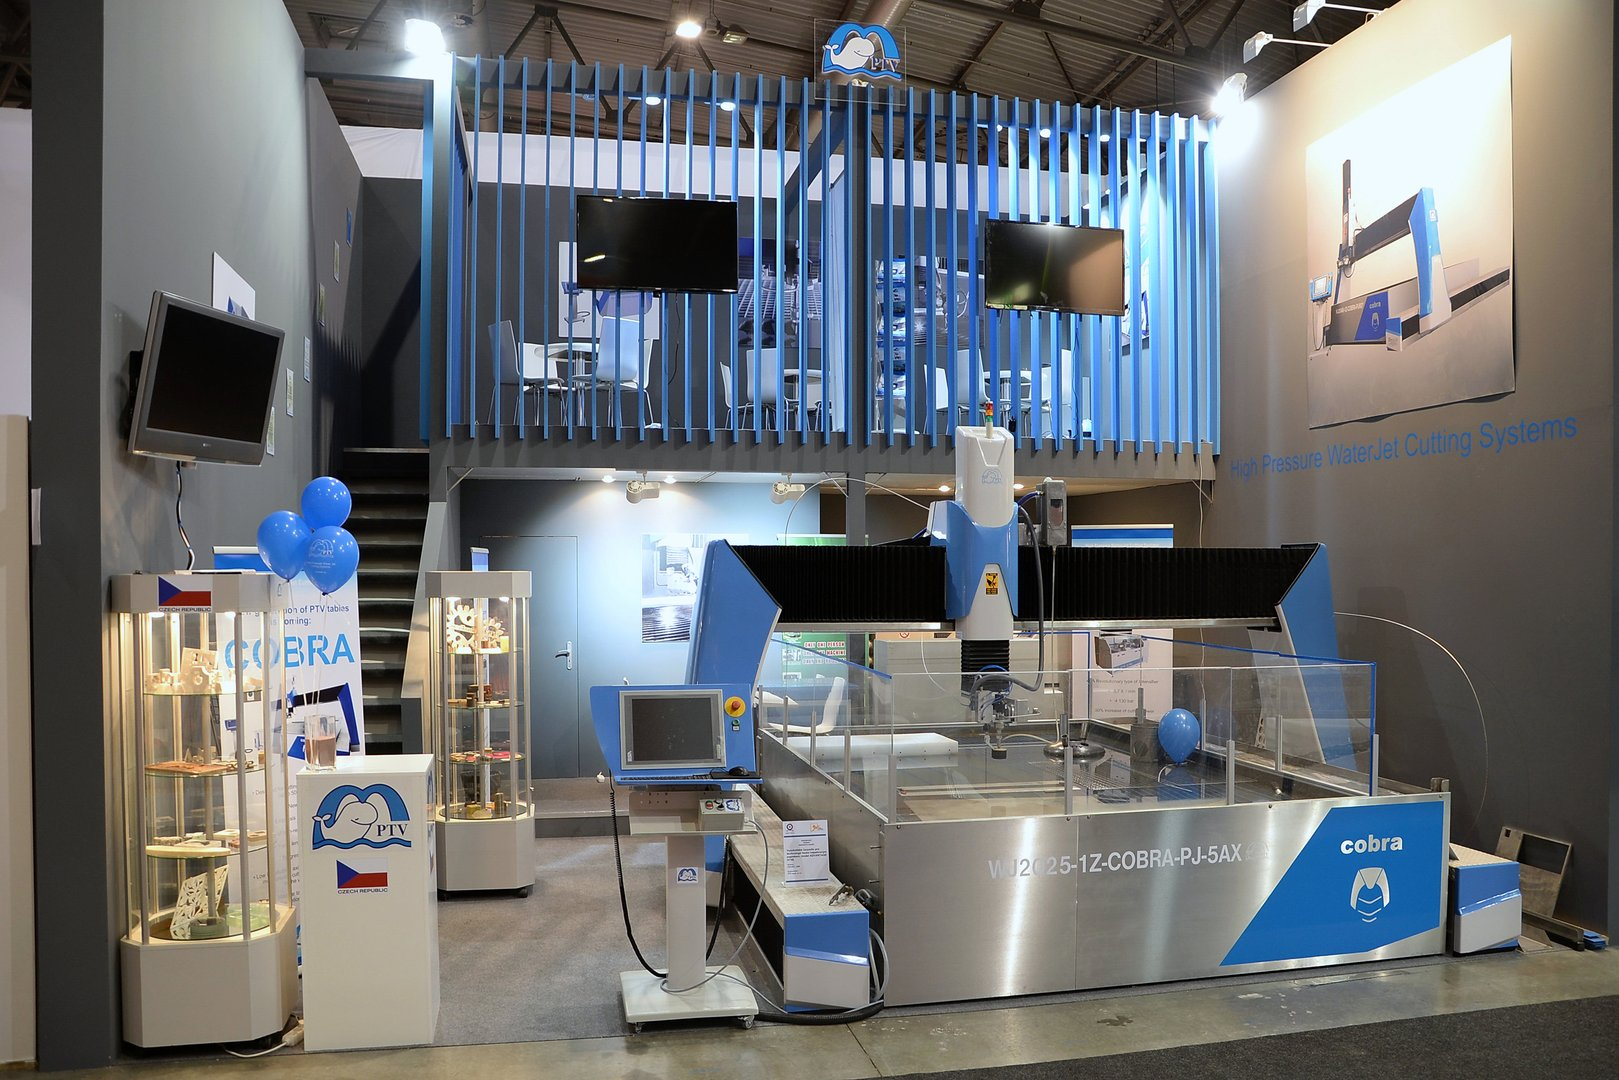 Exhibition Stand Construction Materials : Photo gallery stand construction bvv trade fairs brno